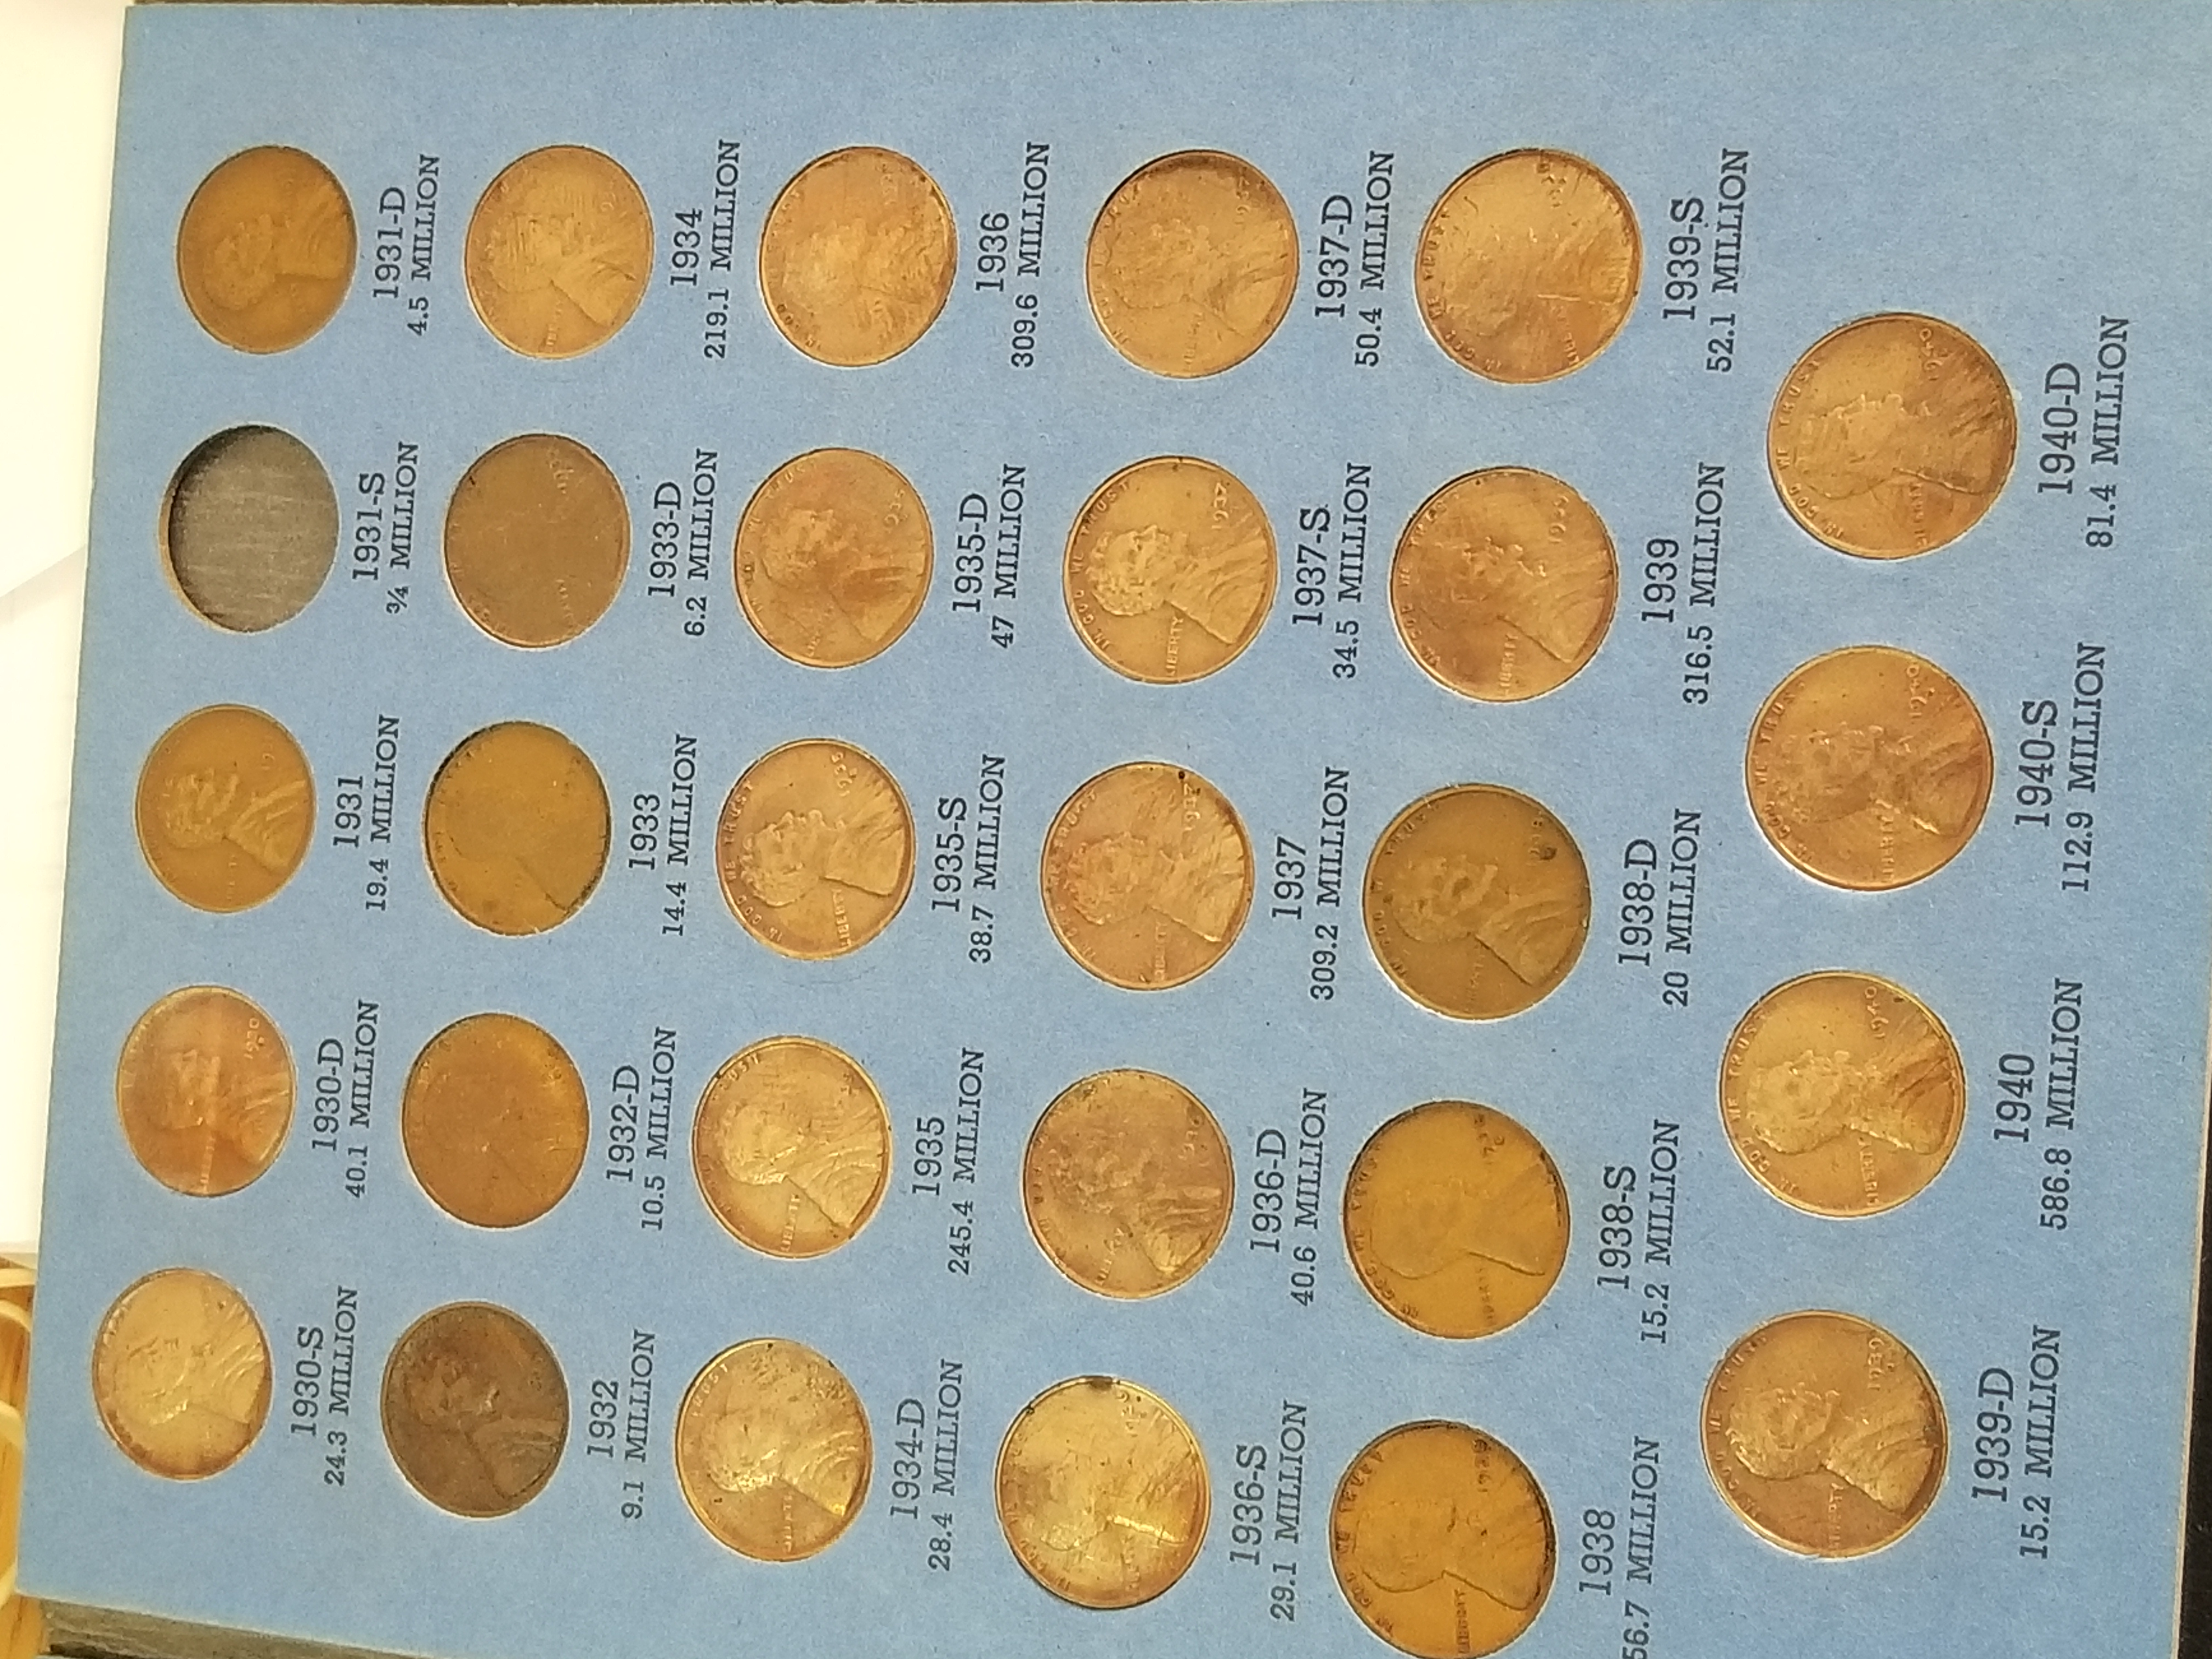 1930 S-1940 D Lincoln Cent Wheat Pennies from a Complete Set 28